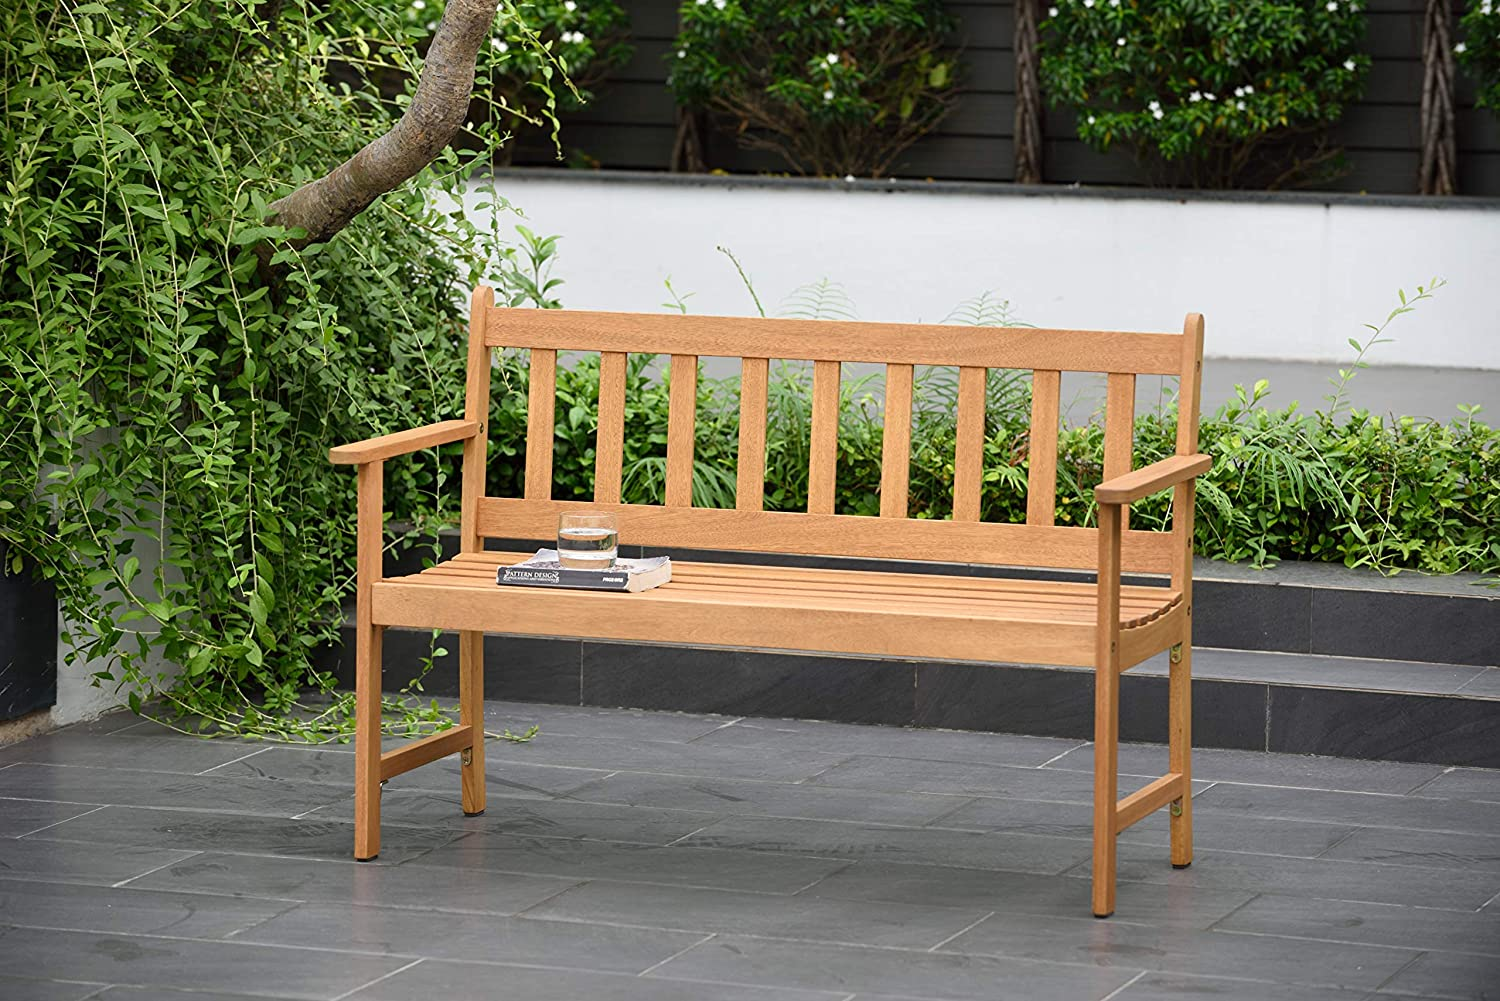 Amazonia Barcelona 2-Seat Patio Bench | Teak Finish | Durable and Ideal for Indoors and Outdoors, Light Brown